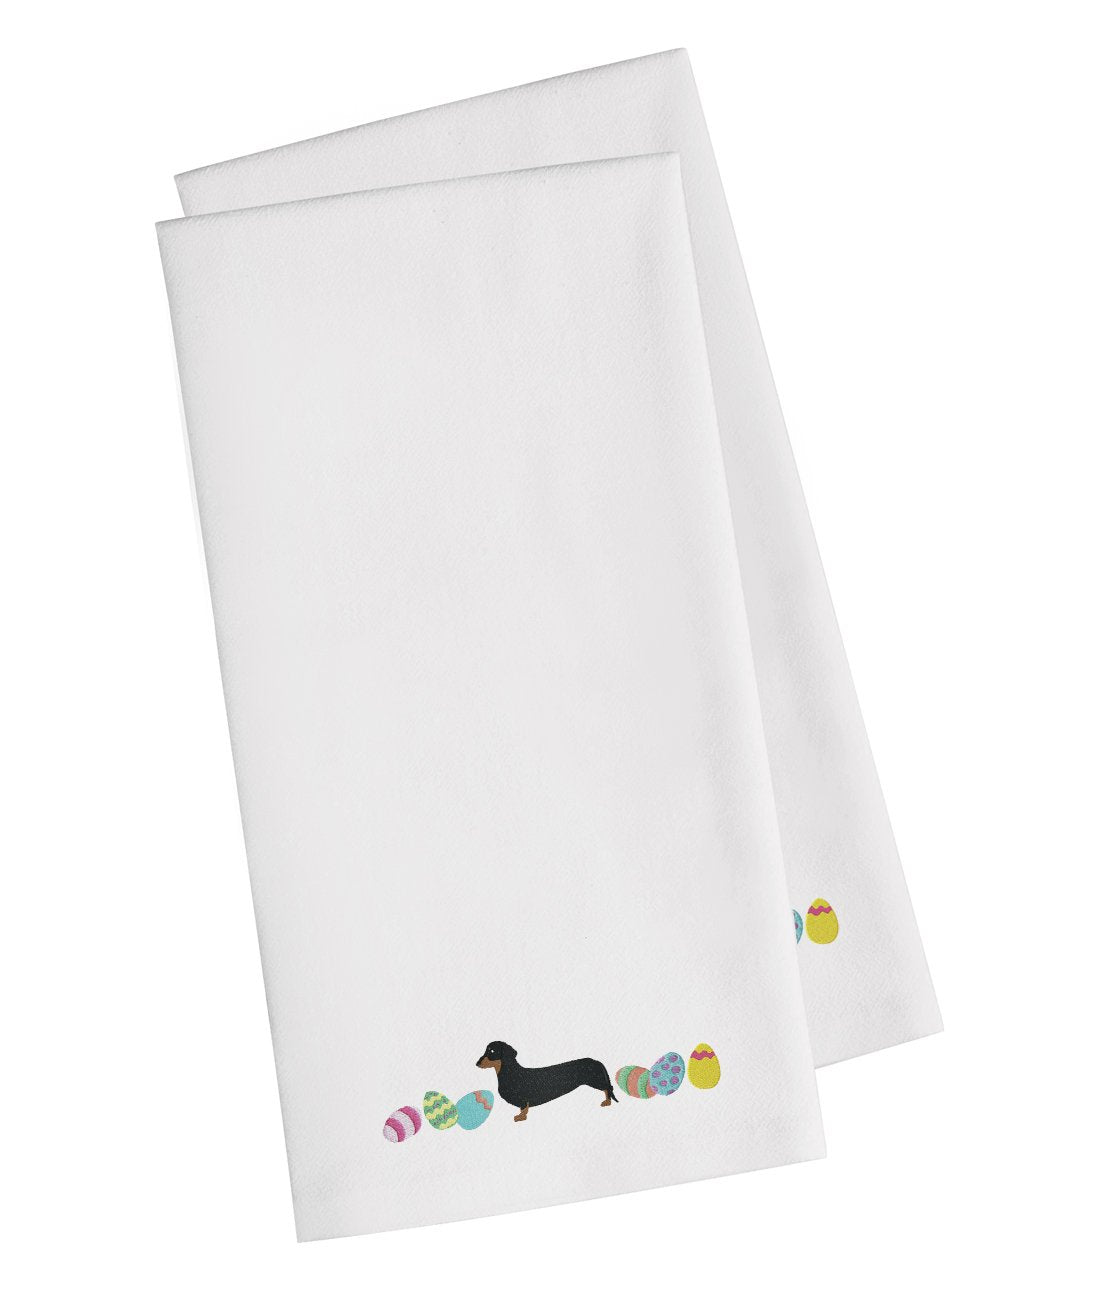 Buy this Dachshund Easter White Embroidered Kitchen Towel Set of 2 CK1631WHTWE